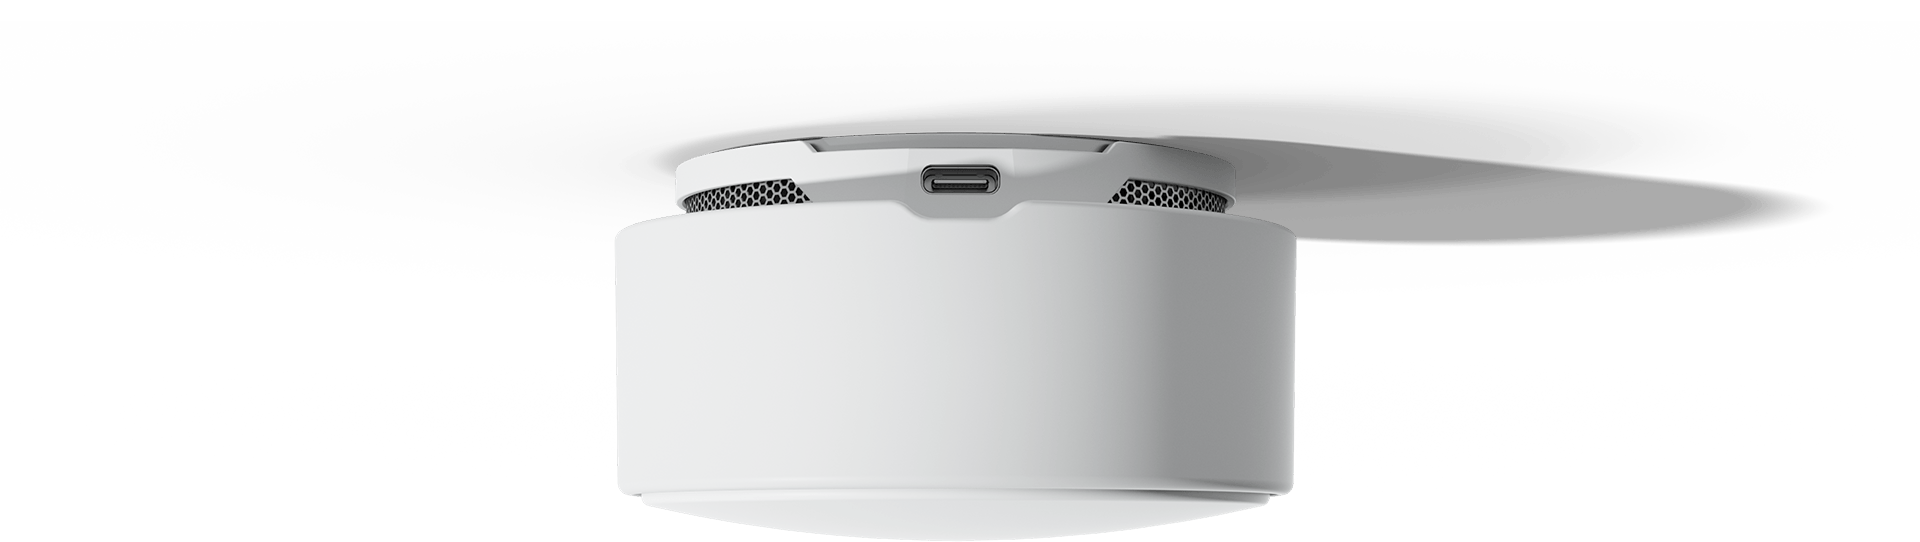 Minut Home Sensor with the usb-c port facing the viewer